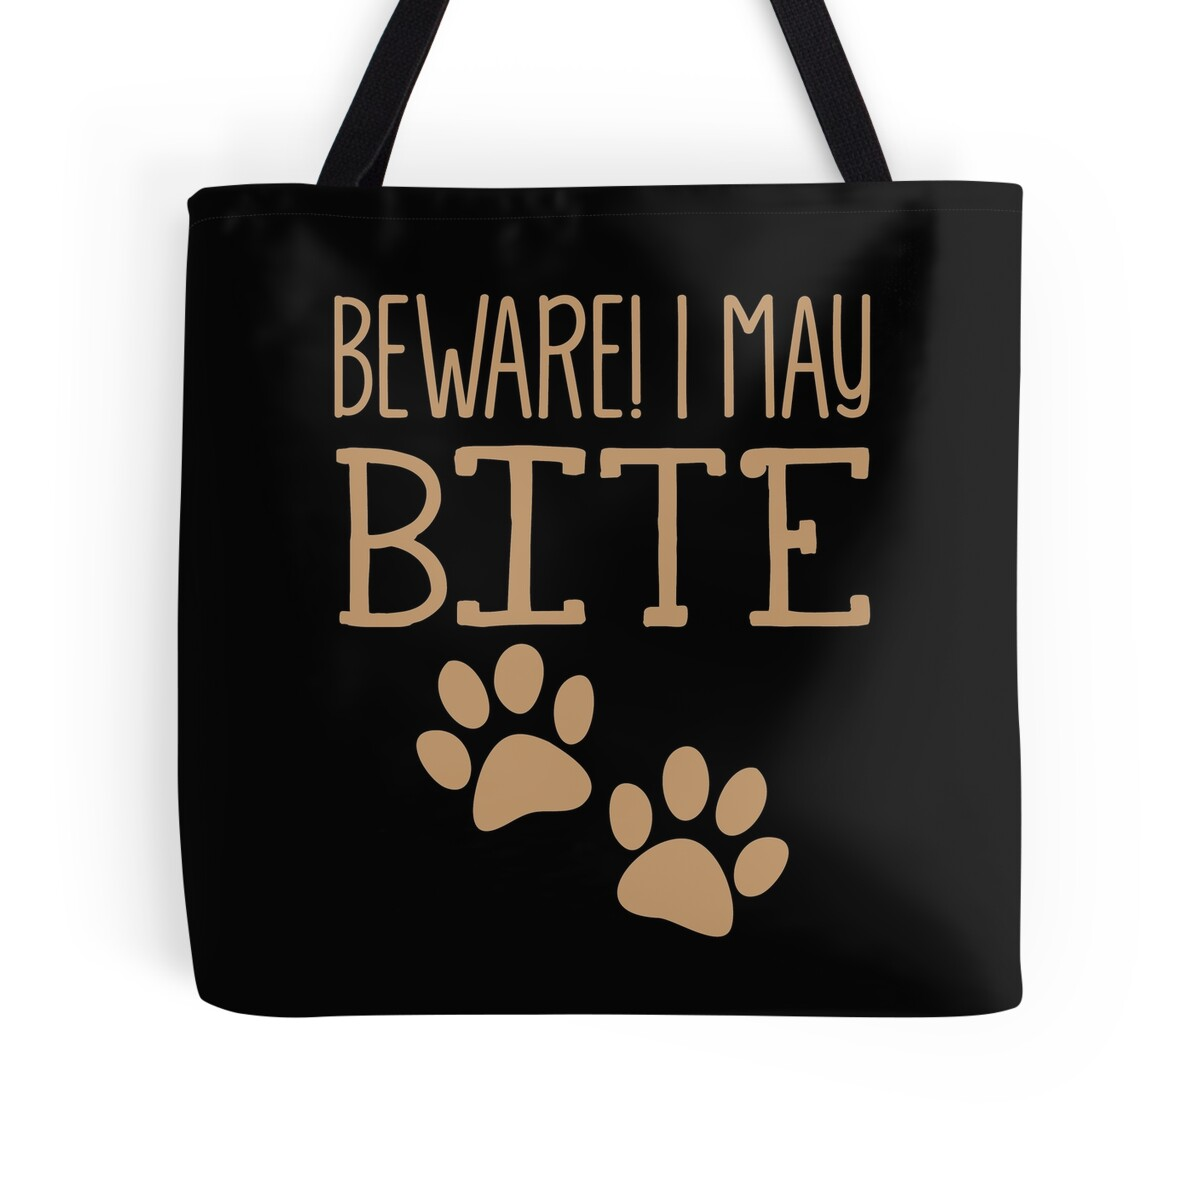 Wall Stickers Perth Quot Beware I May Bite With Sharp Teeth Quot Tote Bags By